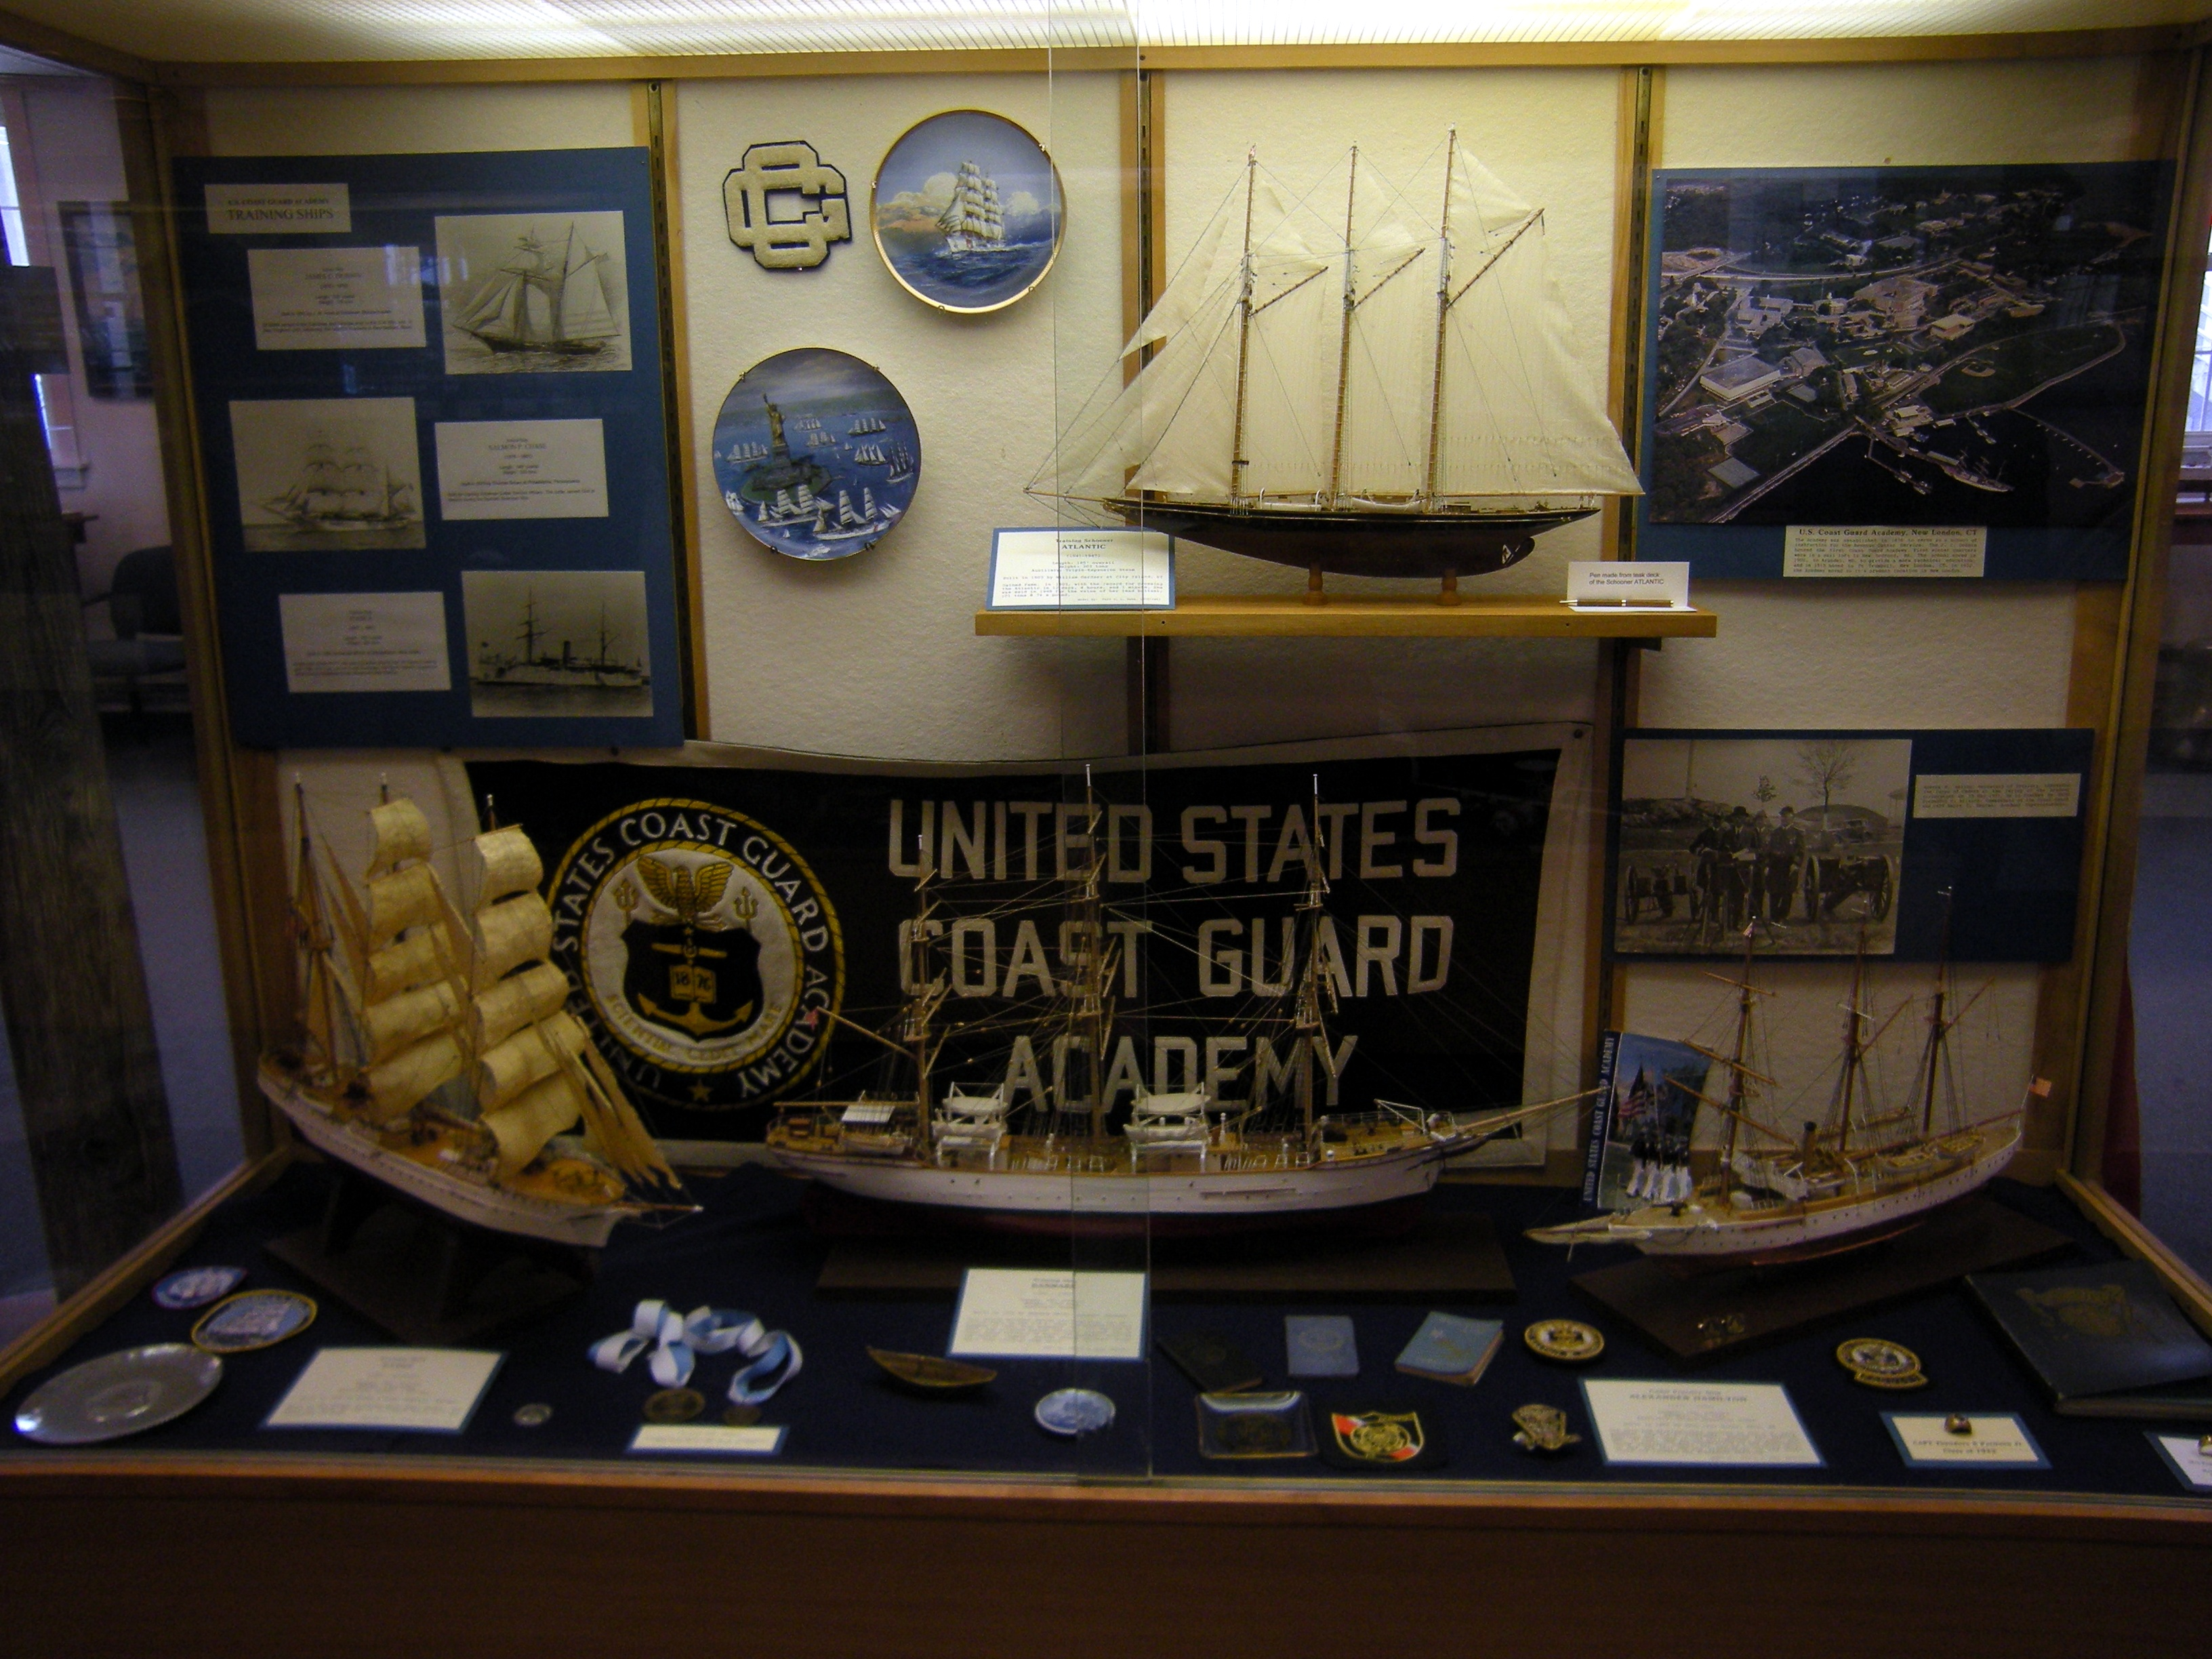 Model ships and artifacts on display.